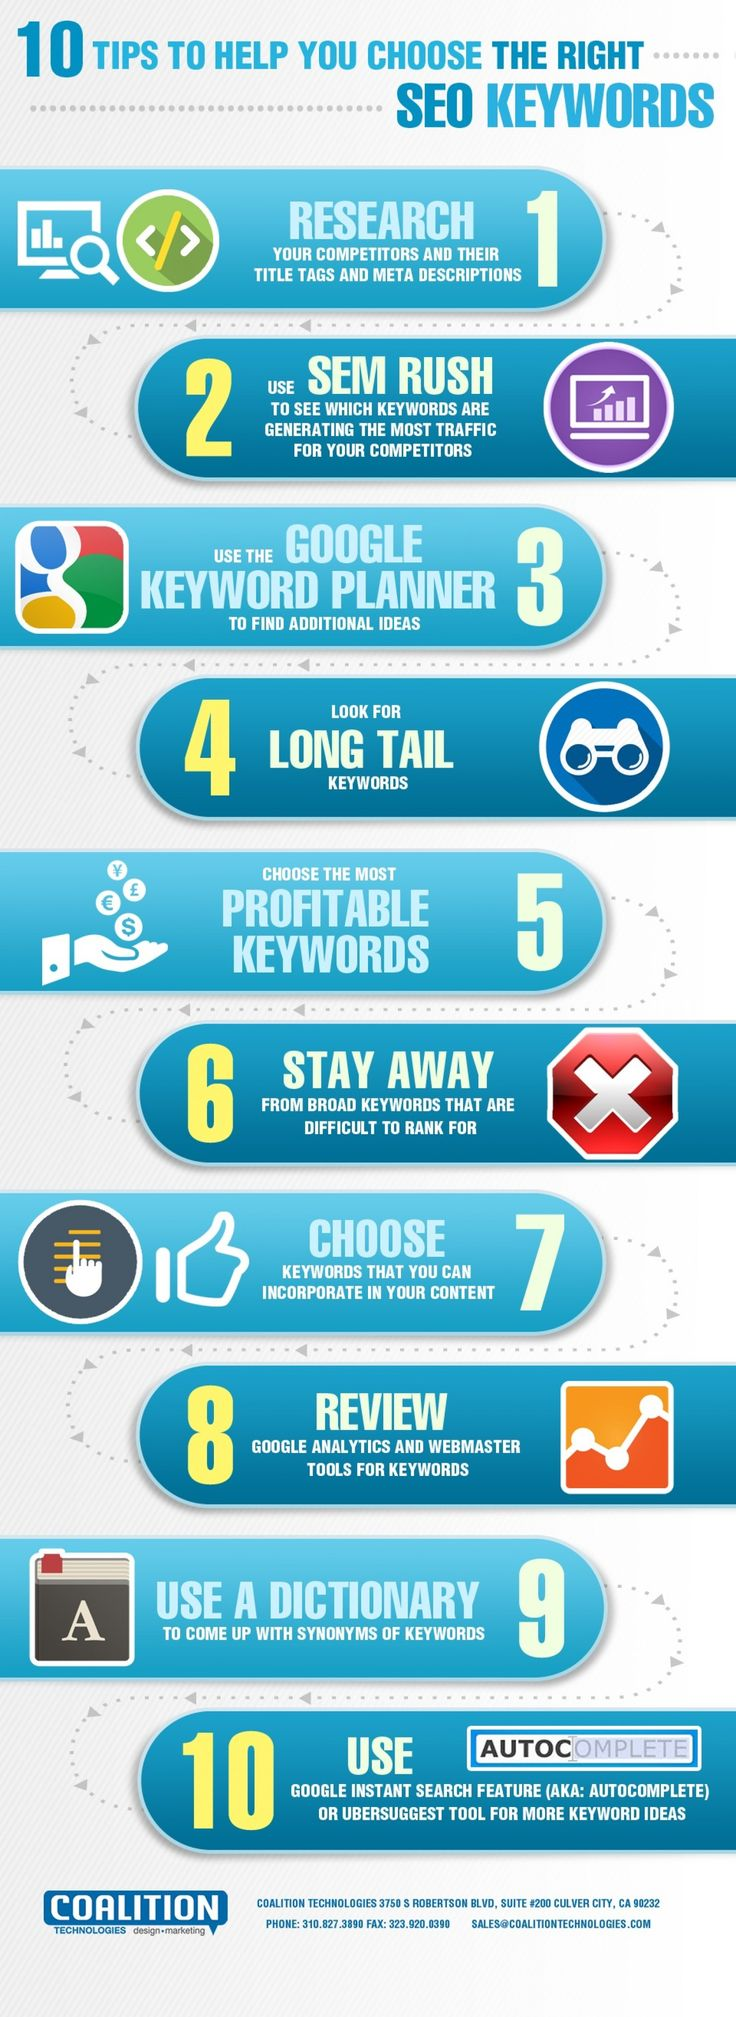 10 Tips to Help You Choose the Right SEO Keywords